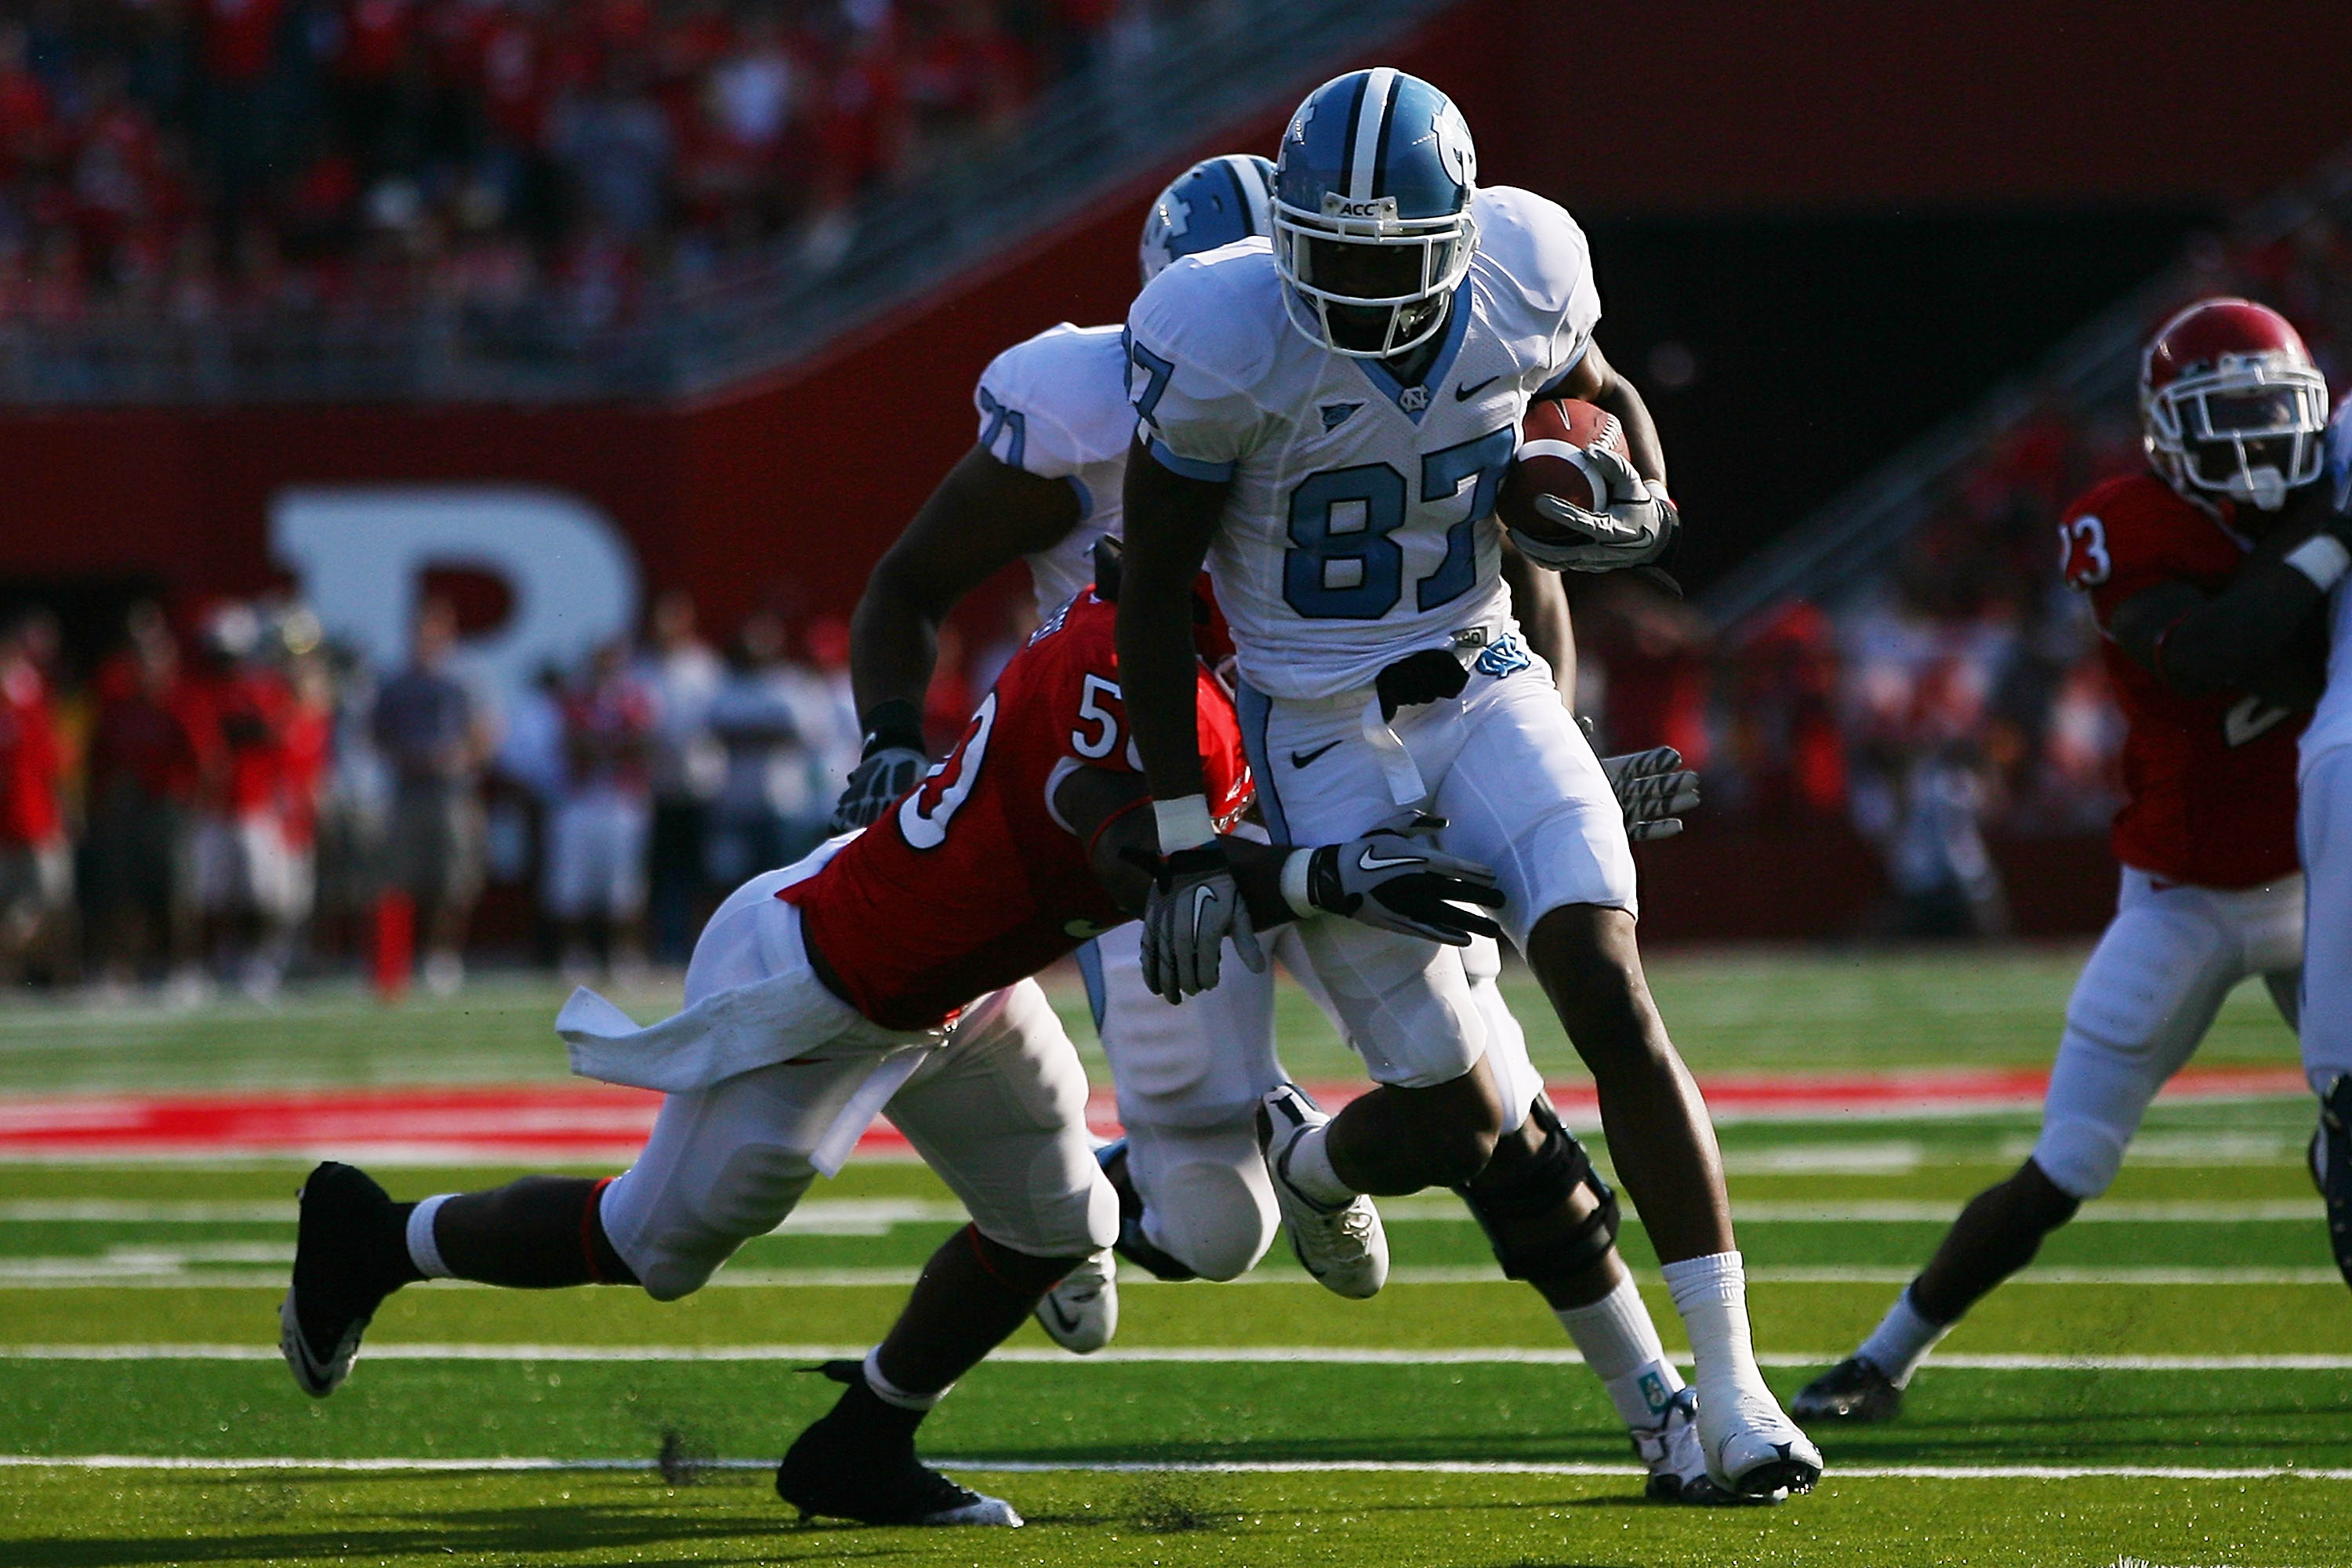 NEW BRUNSWICK, NJ - SEPTEMBER 25:  Jheranie Boyd #87 of the North Carolina Tar Heels breaks the tackle of Antonio Lowery #50 of the Rutgers Scarlet Knights during the second quarter at Rutgers Stadium on September 25, 2010 in New Brunswick, New Jersey.  (